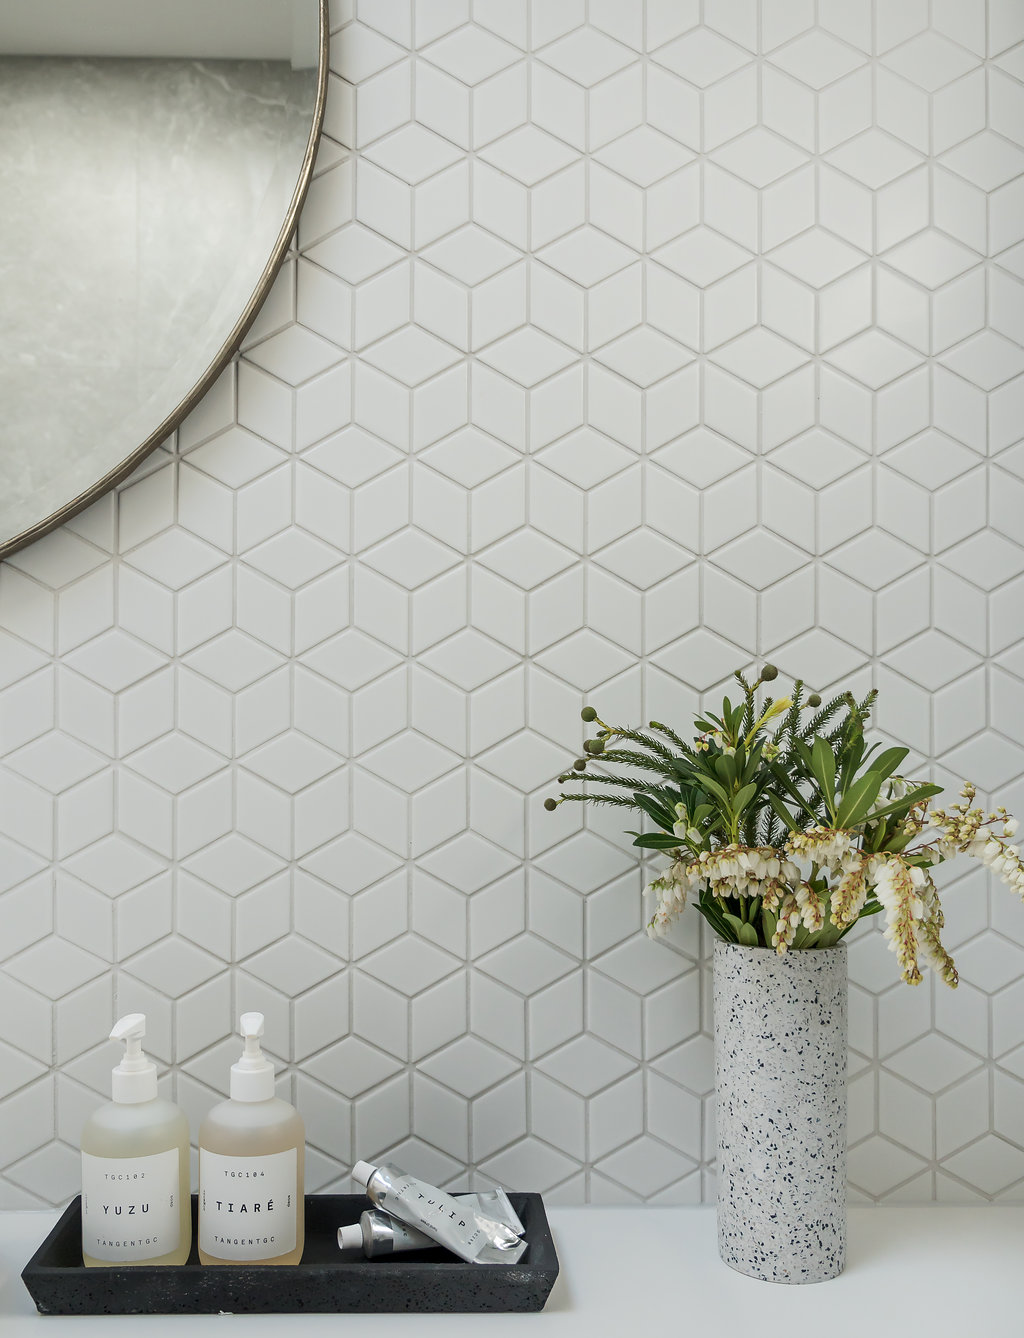 Geometric tile detail